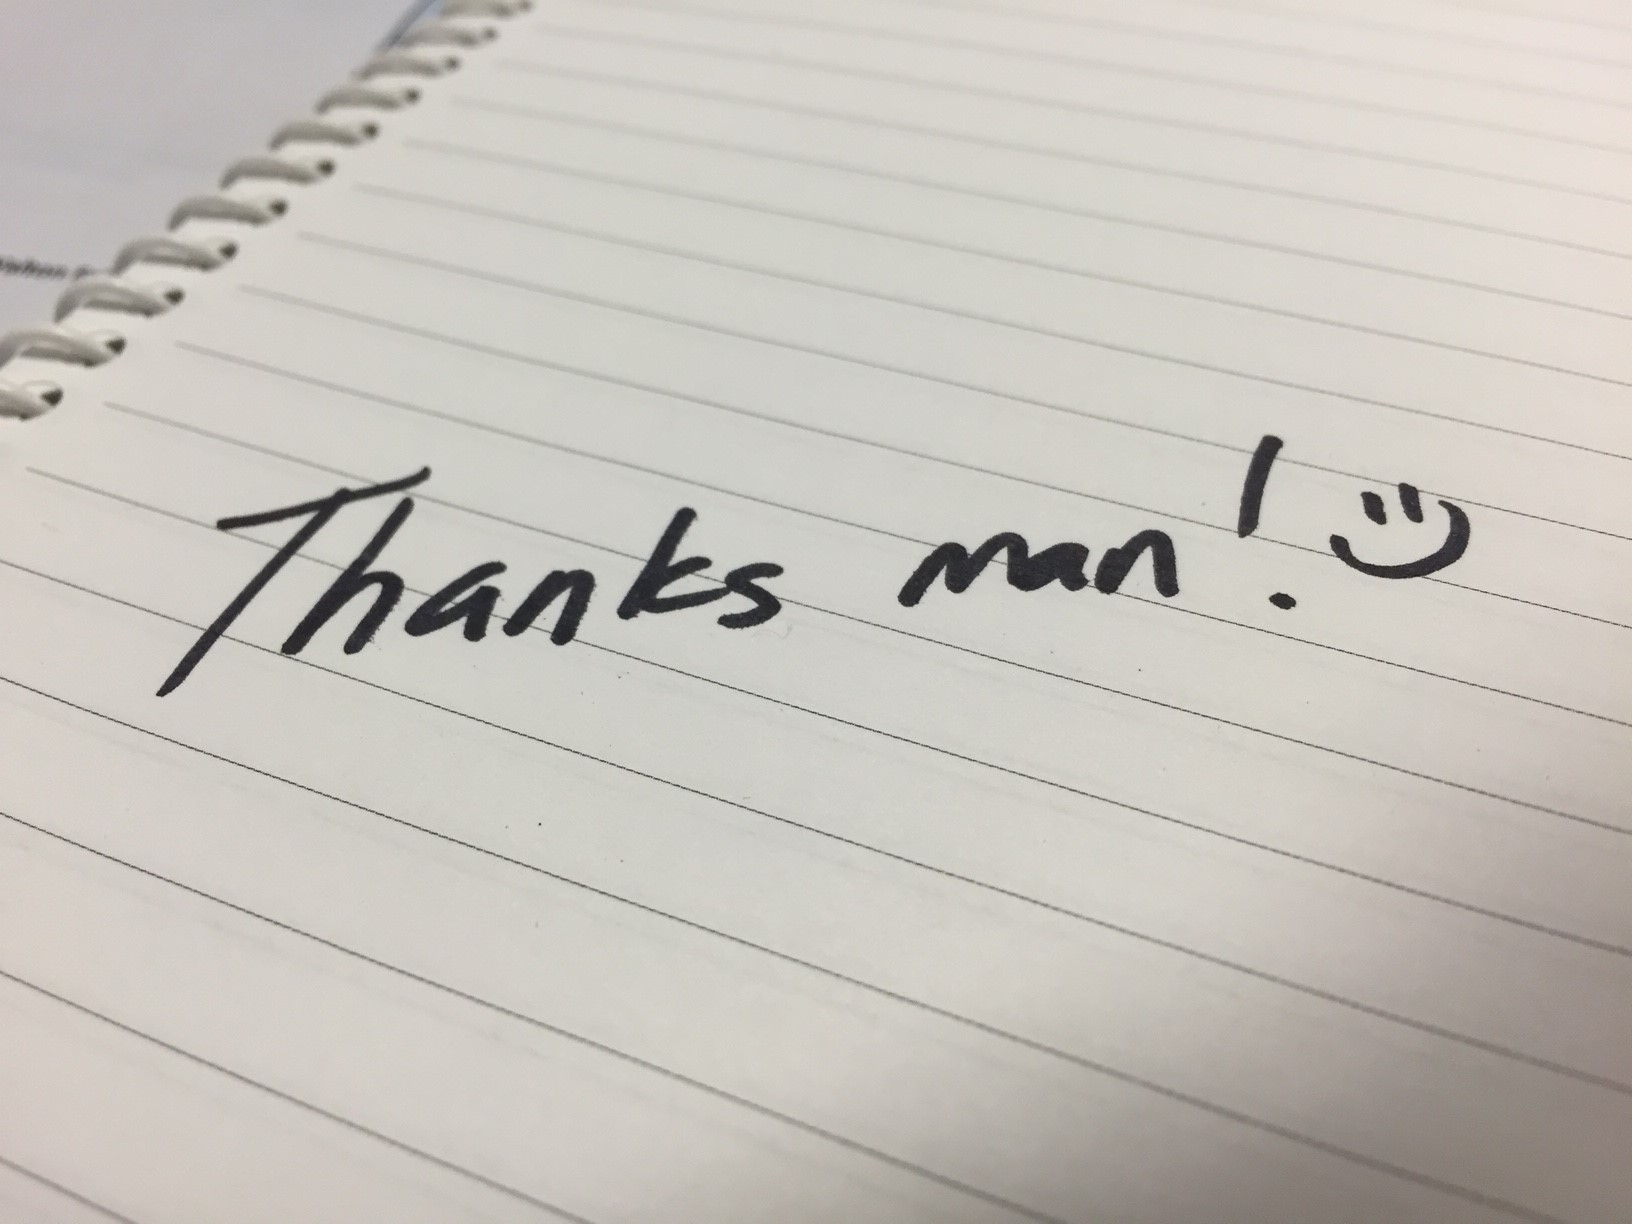 how a bad thank you note can cost you the job campus to career thanks man